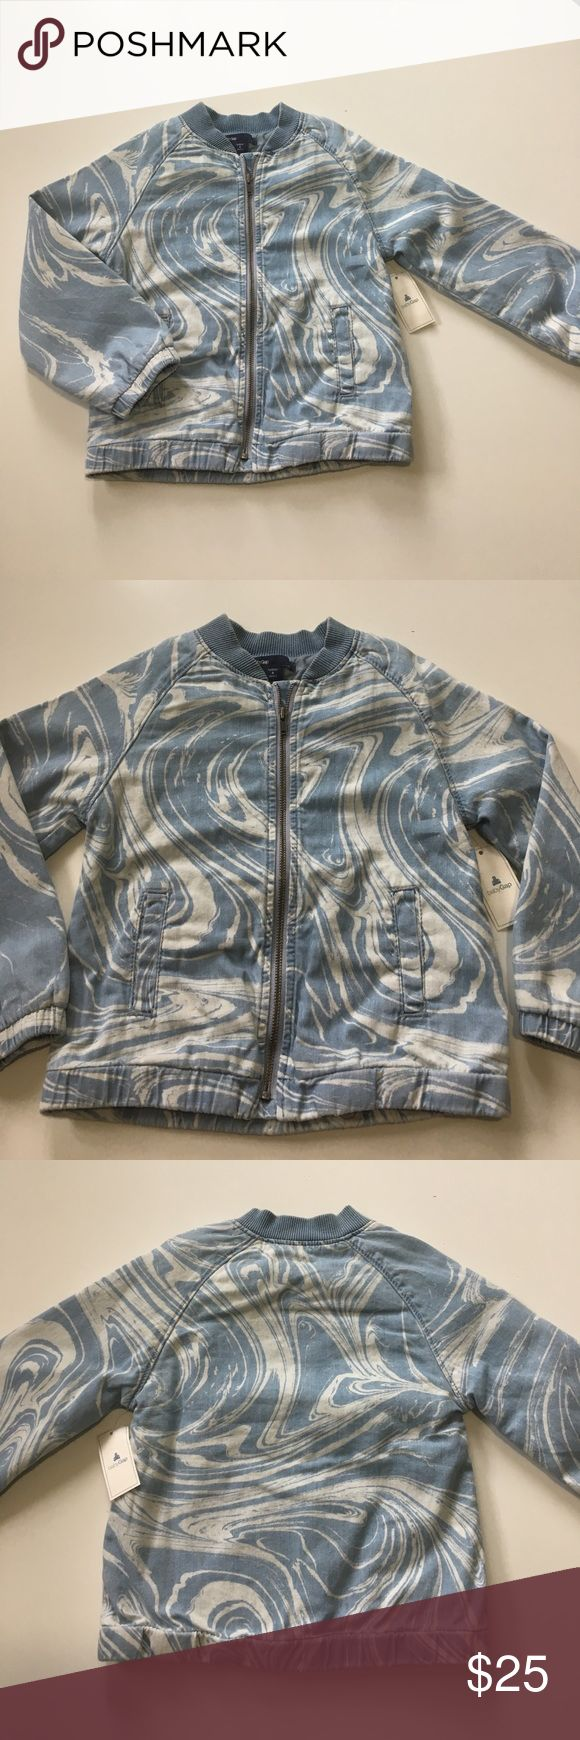 Baby Gap Jacket NWT. My daughter didn't have a chance to wear it. More jackets will be posted. Please check them out. GAP Jackets & Coats